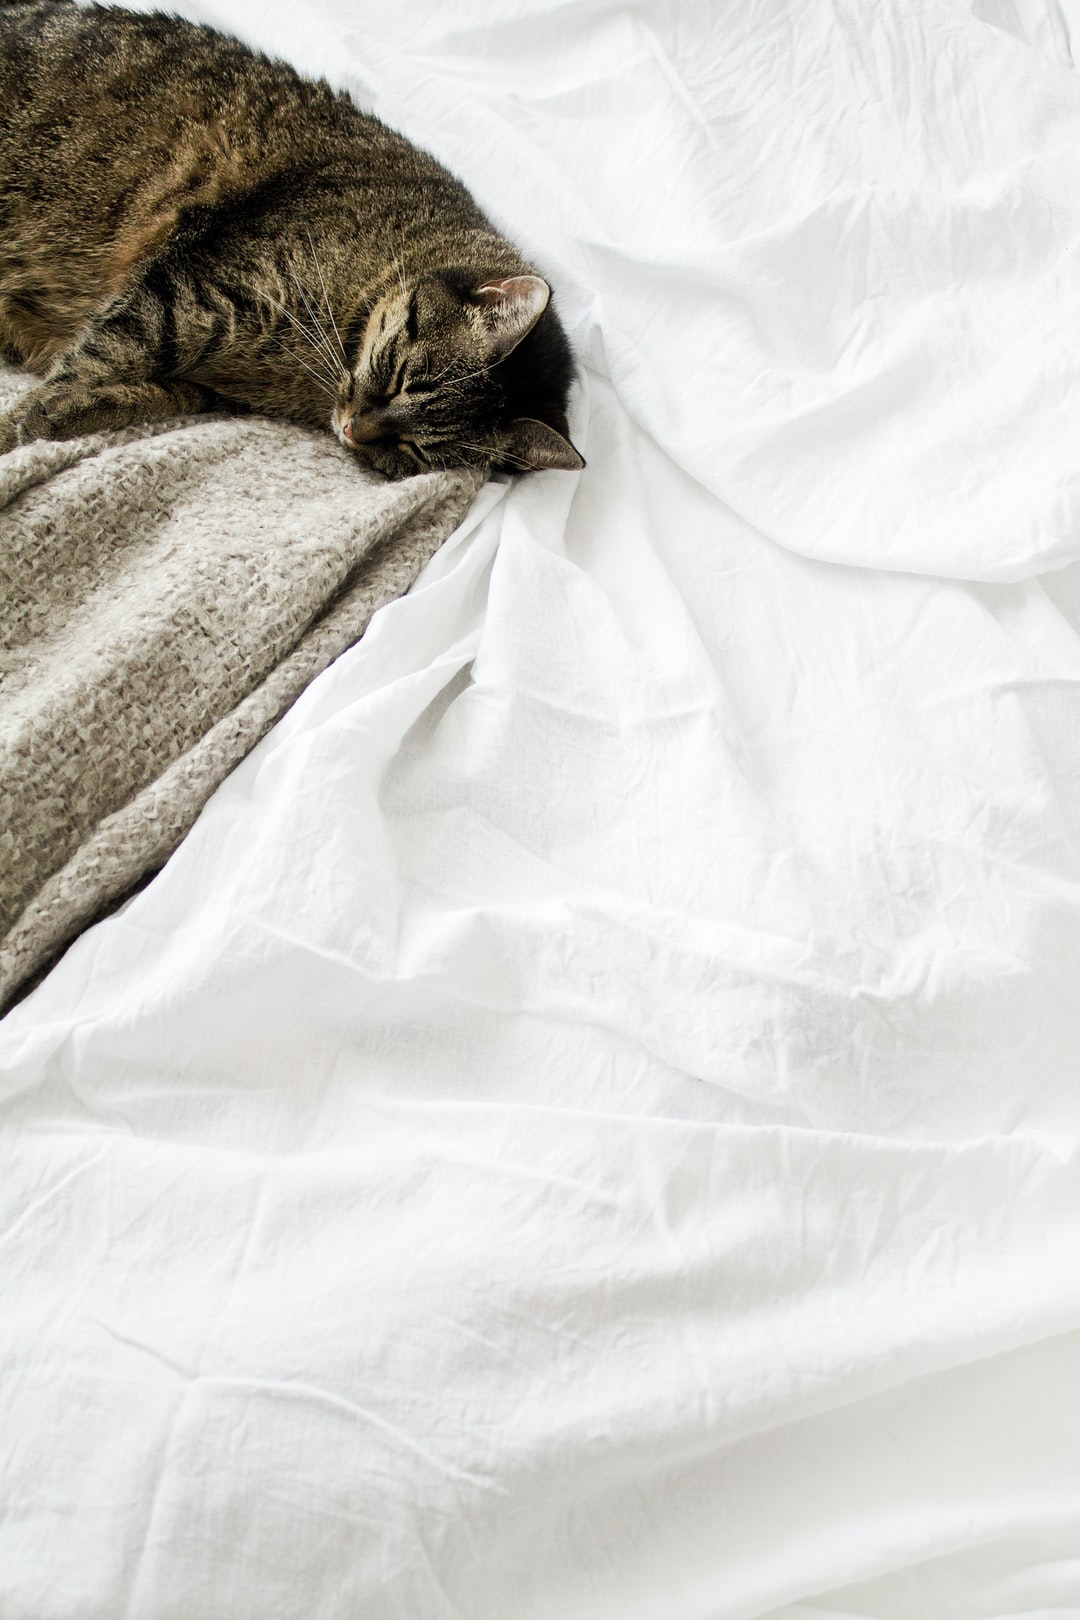 I took this photo one day when I came in our bedroom and saw our little cat Lexi on our bed. It was such a calm atmosphere in that moment that I decided to take a picture of it.